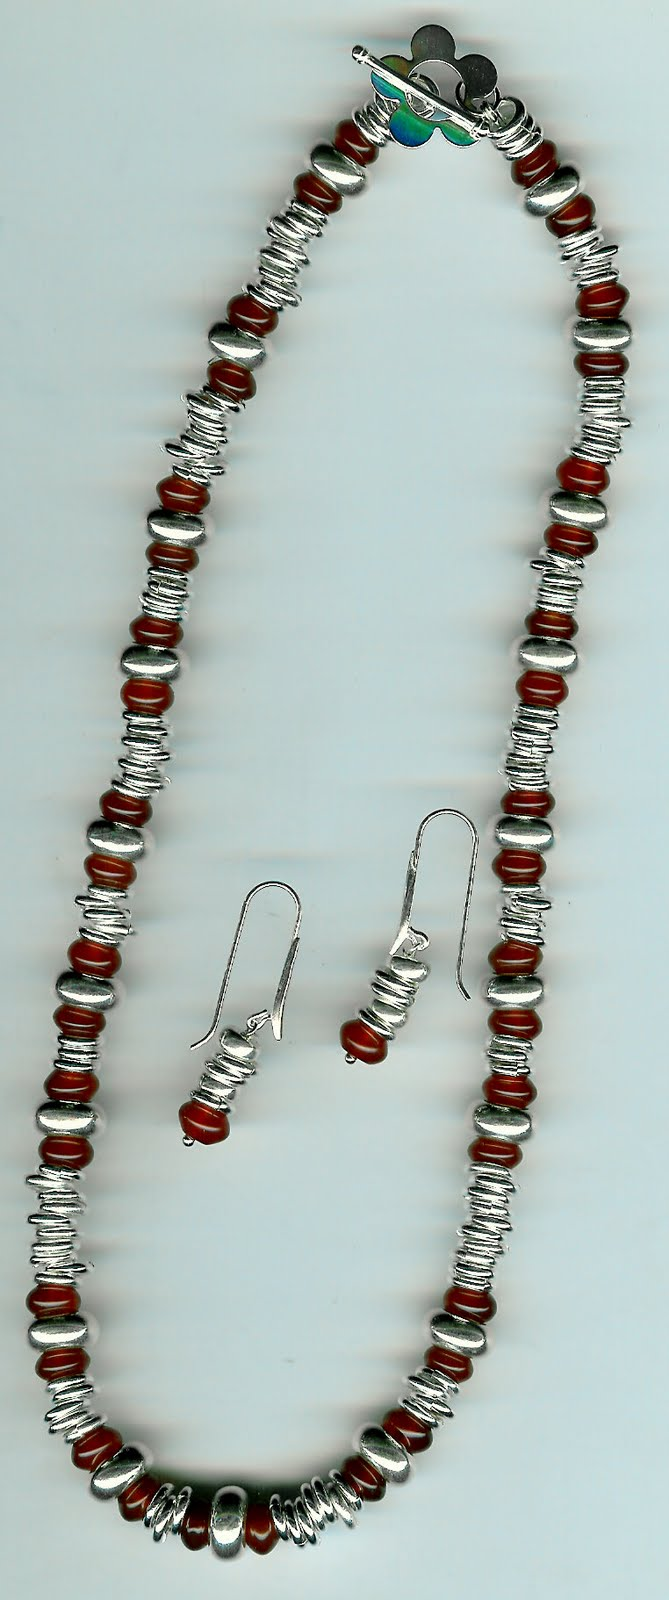 167. Carnelian with Sterling Silver + Earrings